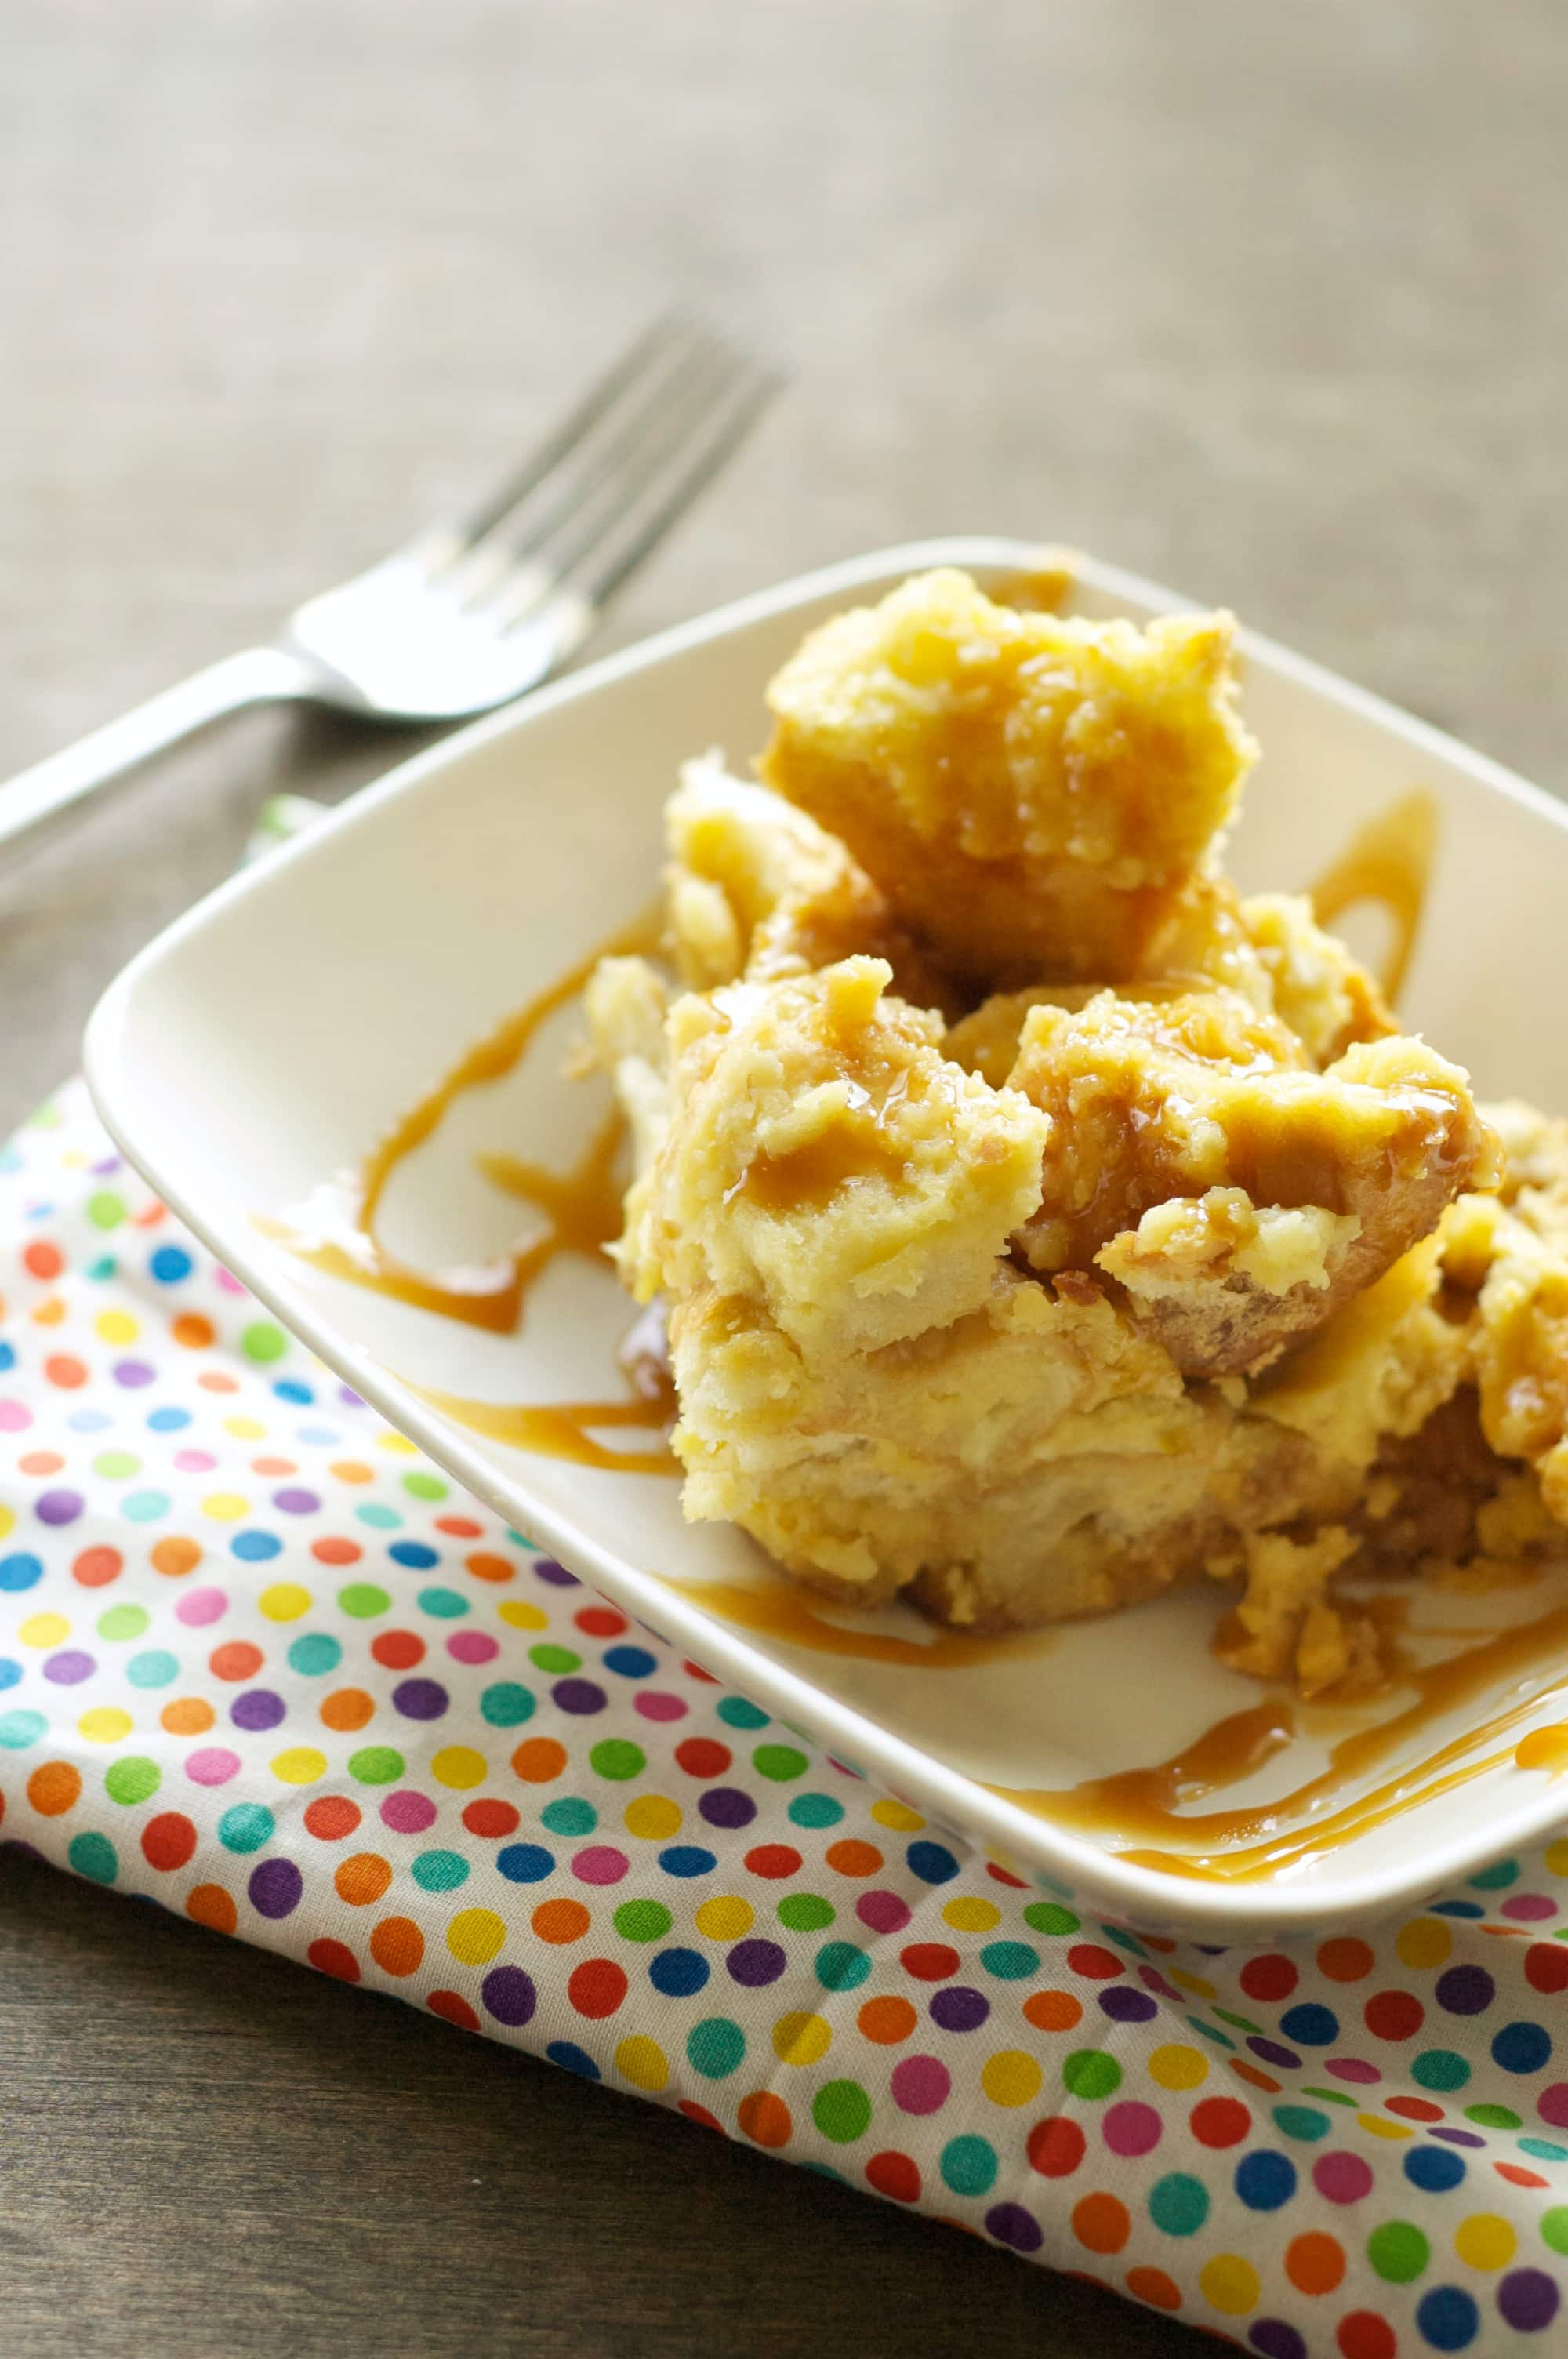 Slow Cooker Bread Pudding with Salted Caramel Sauce